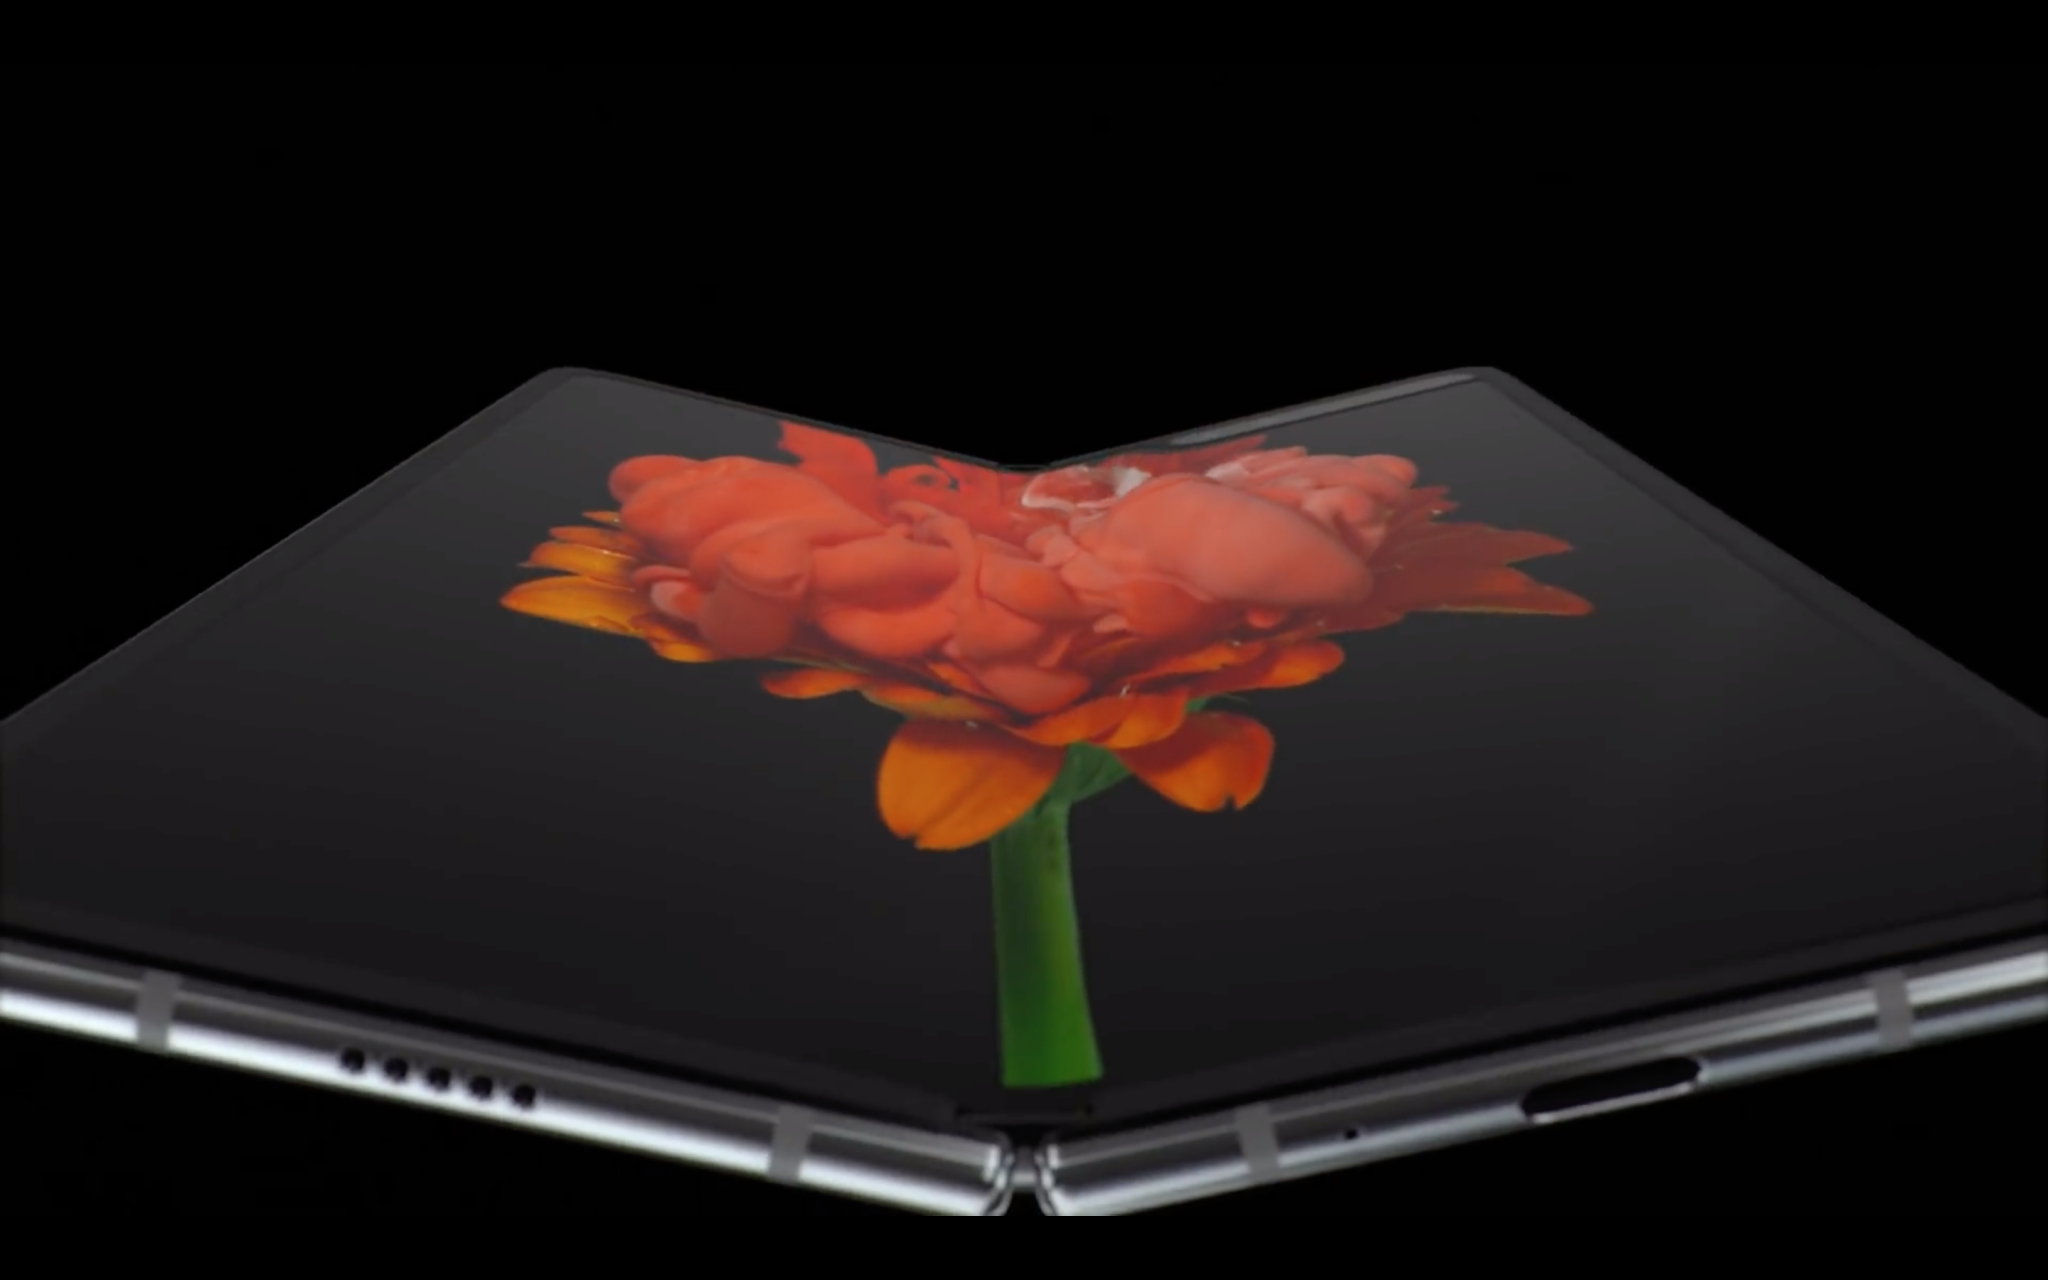 Samsung plans to develop two more foldable smartphones